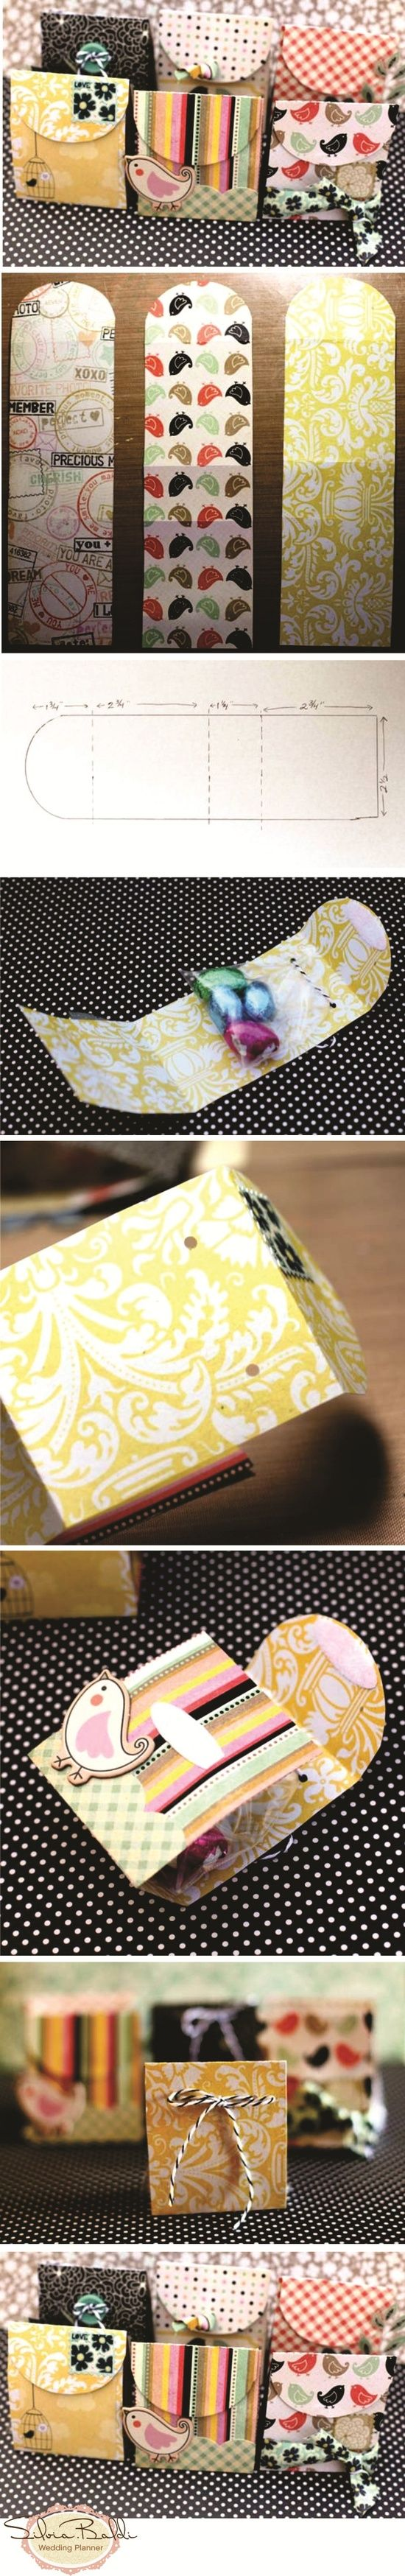 Mini-Envelopes: alter ribbon so that it ties around sides? otherwise stuff will fall out!